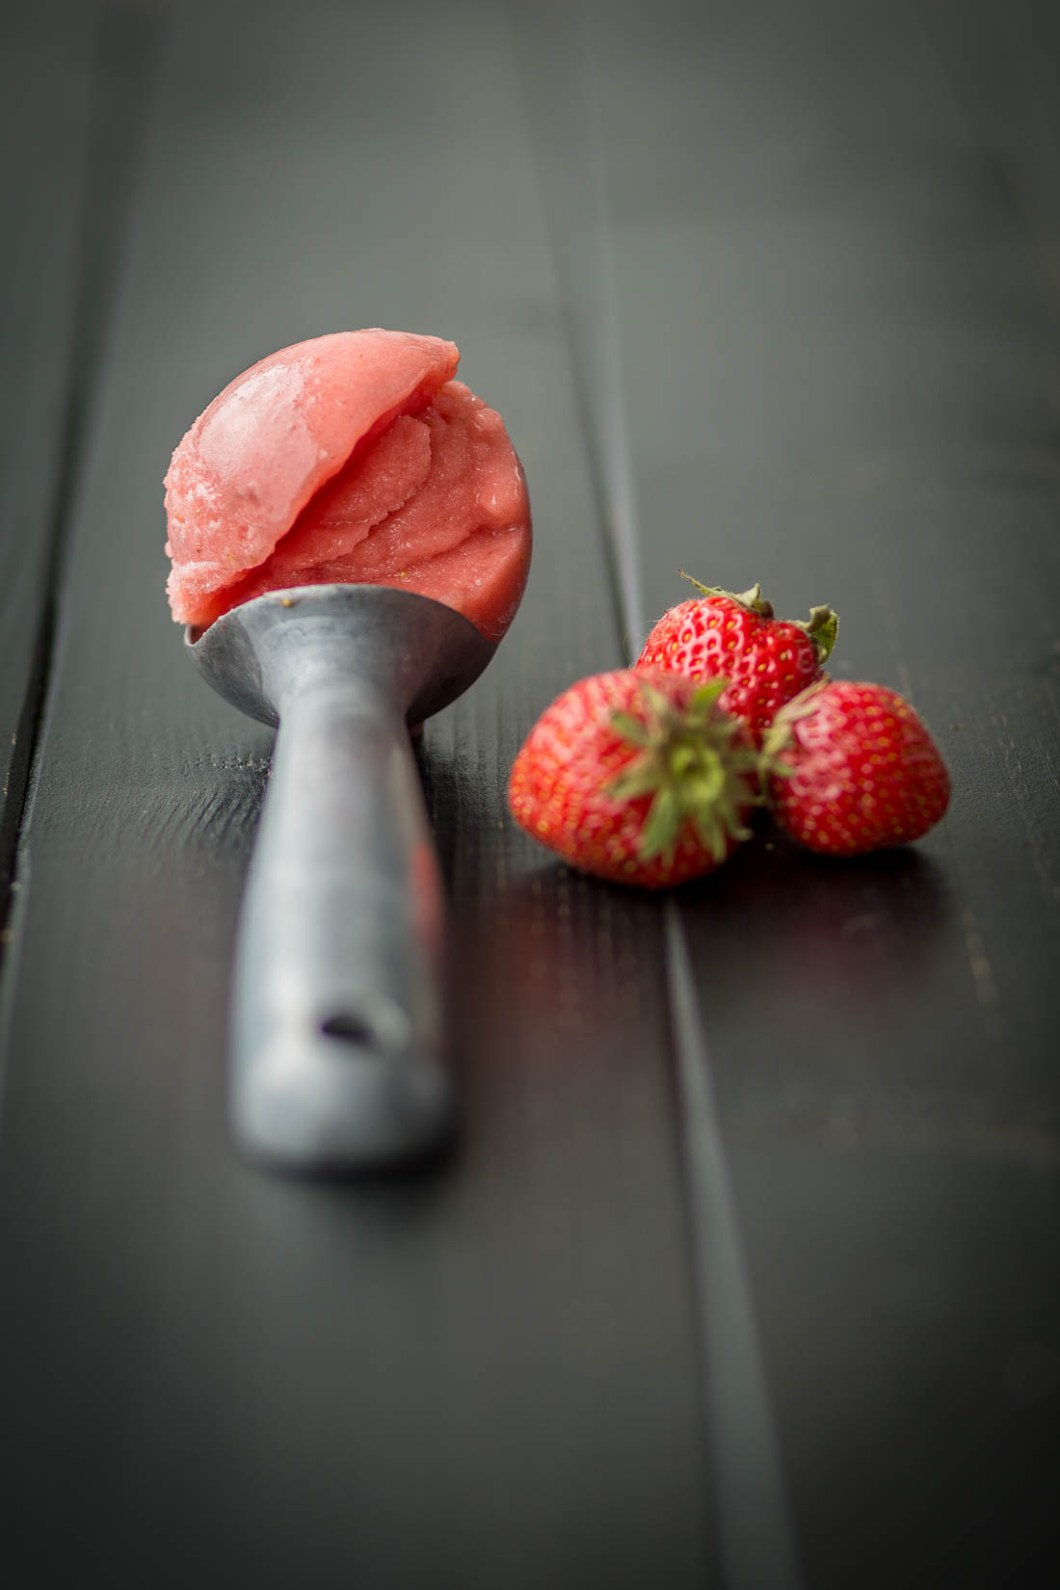 Creamy Sorbet with Strawberries and Watermelon | Cremiges Sorbet mit Erdbeeren und Wassermelone